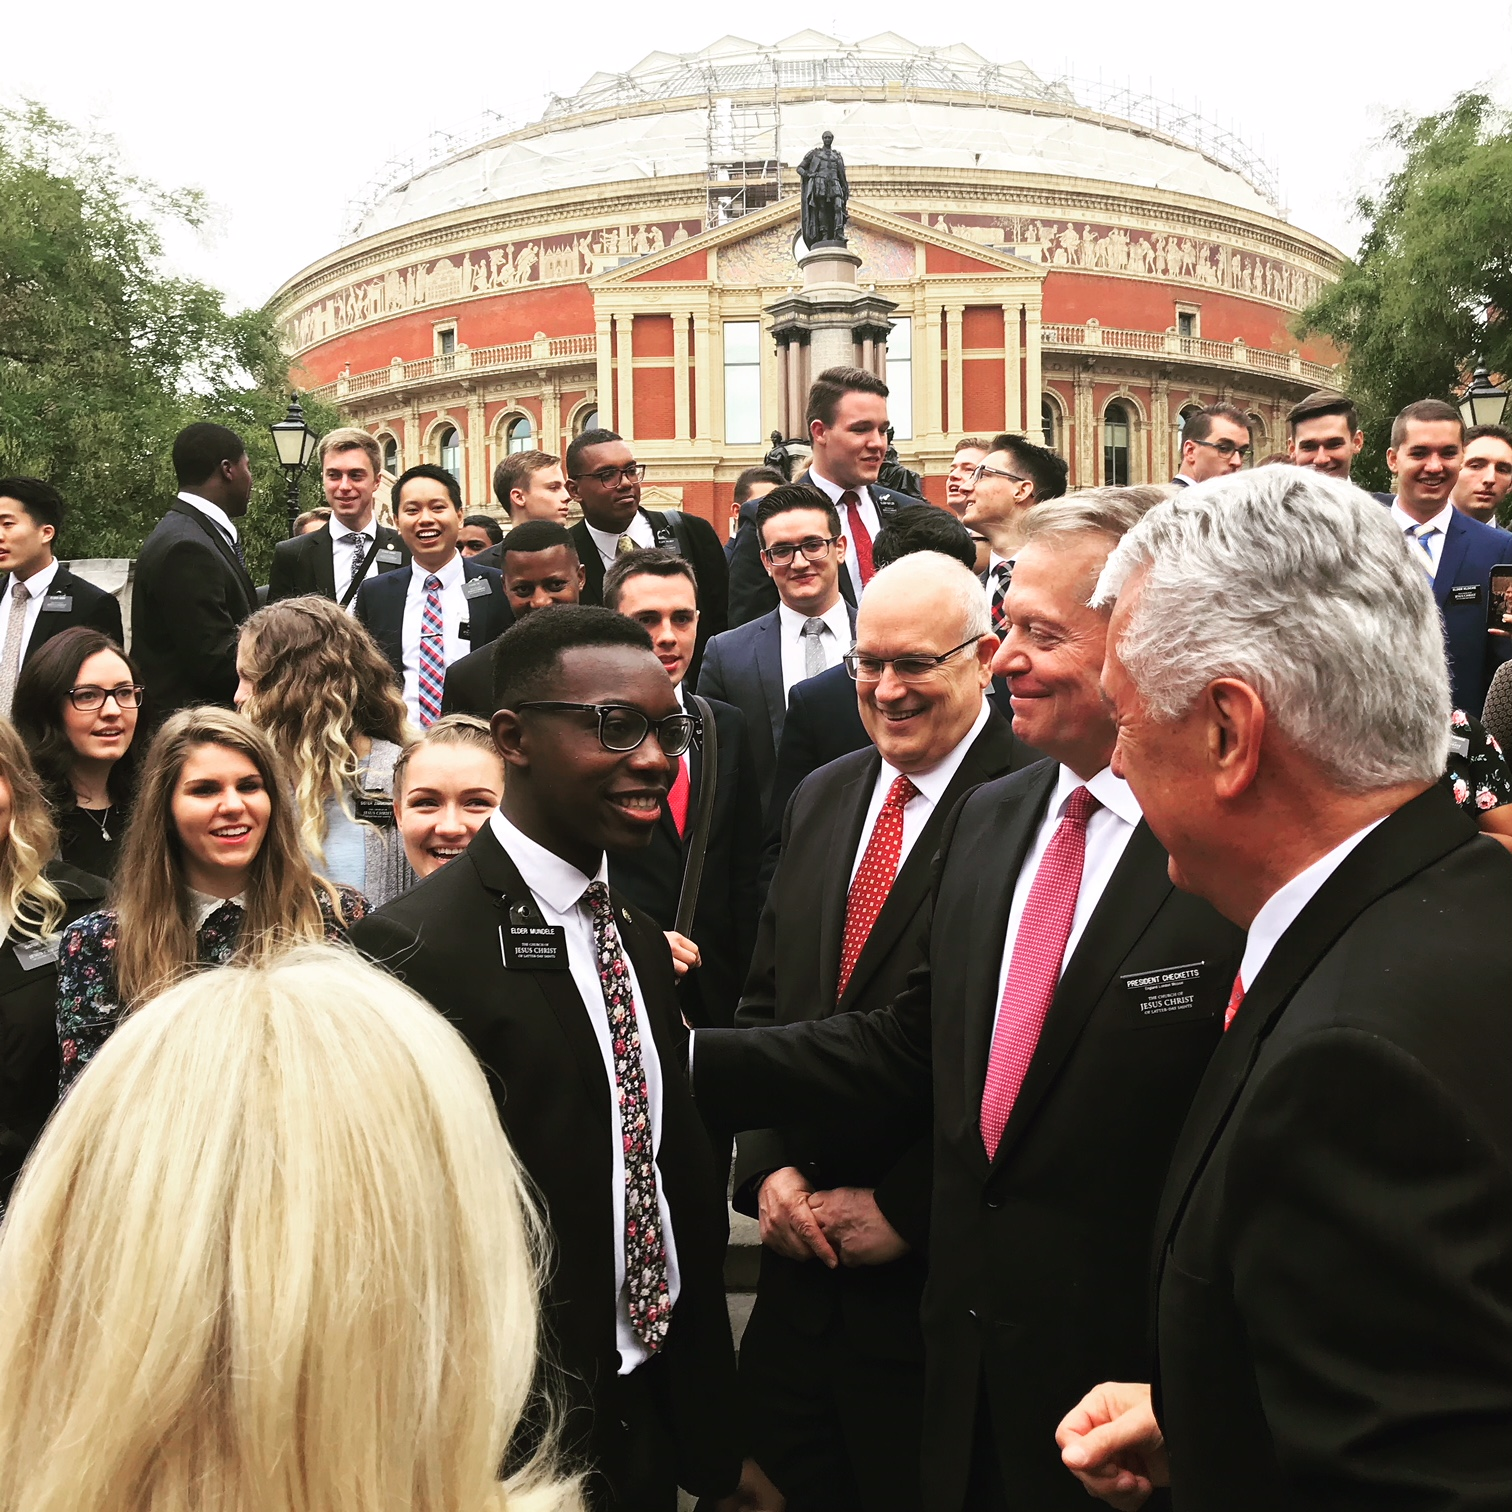 Elder Dieter F. Uchtdorf, right, of the Quorum of the Twelve Apostles, joins President David W. Checketts of the England London Mission in greeting some of the mission's missionaries after a group photo outside London's Royal Albert Hall on Sept. 8, 2018.